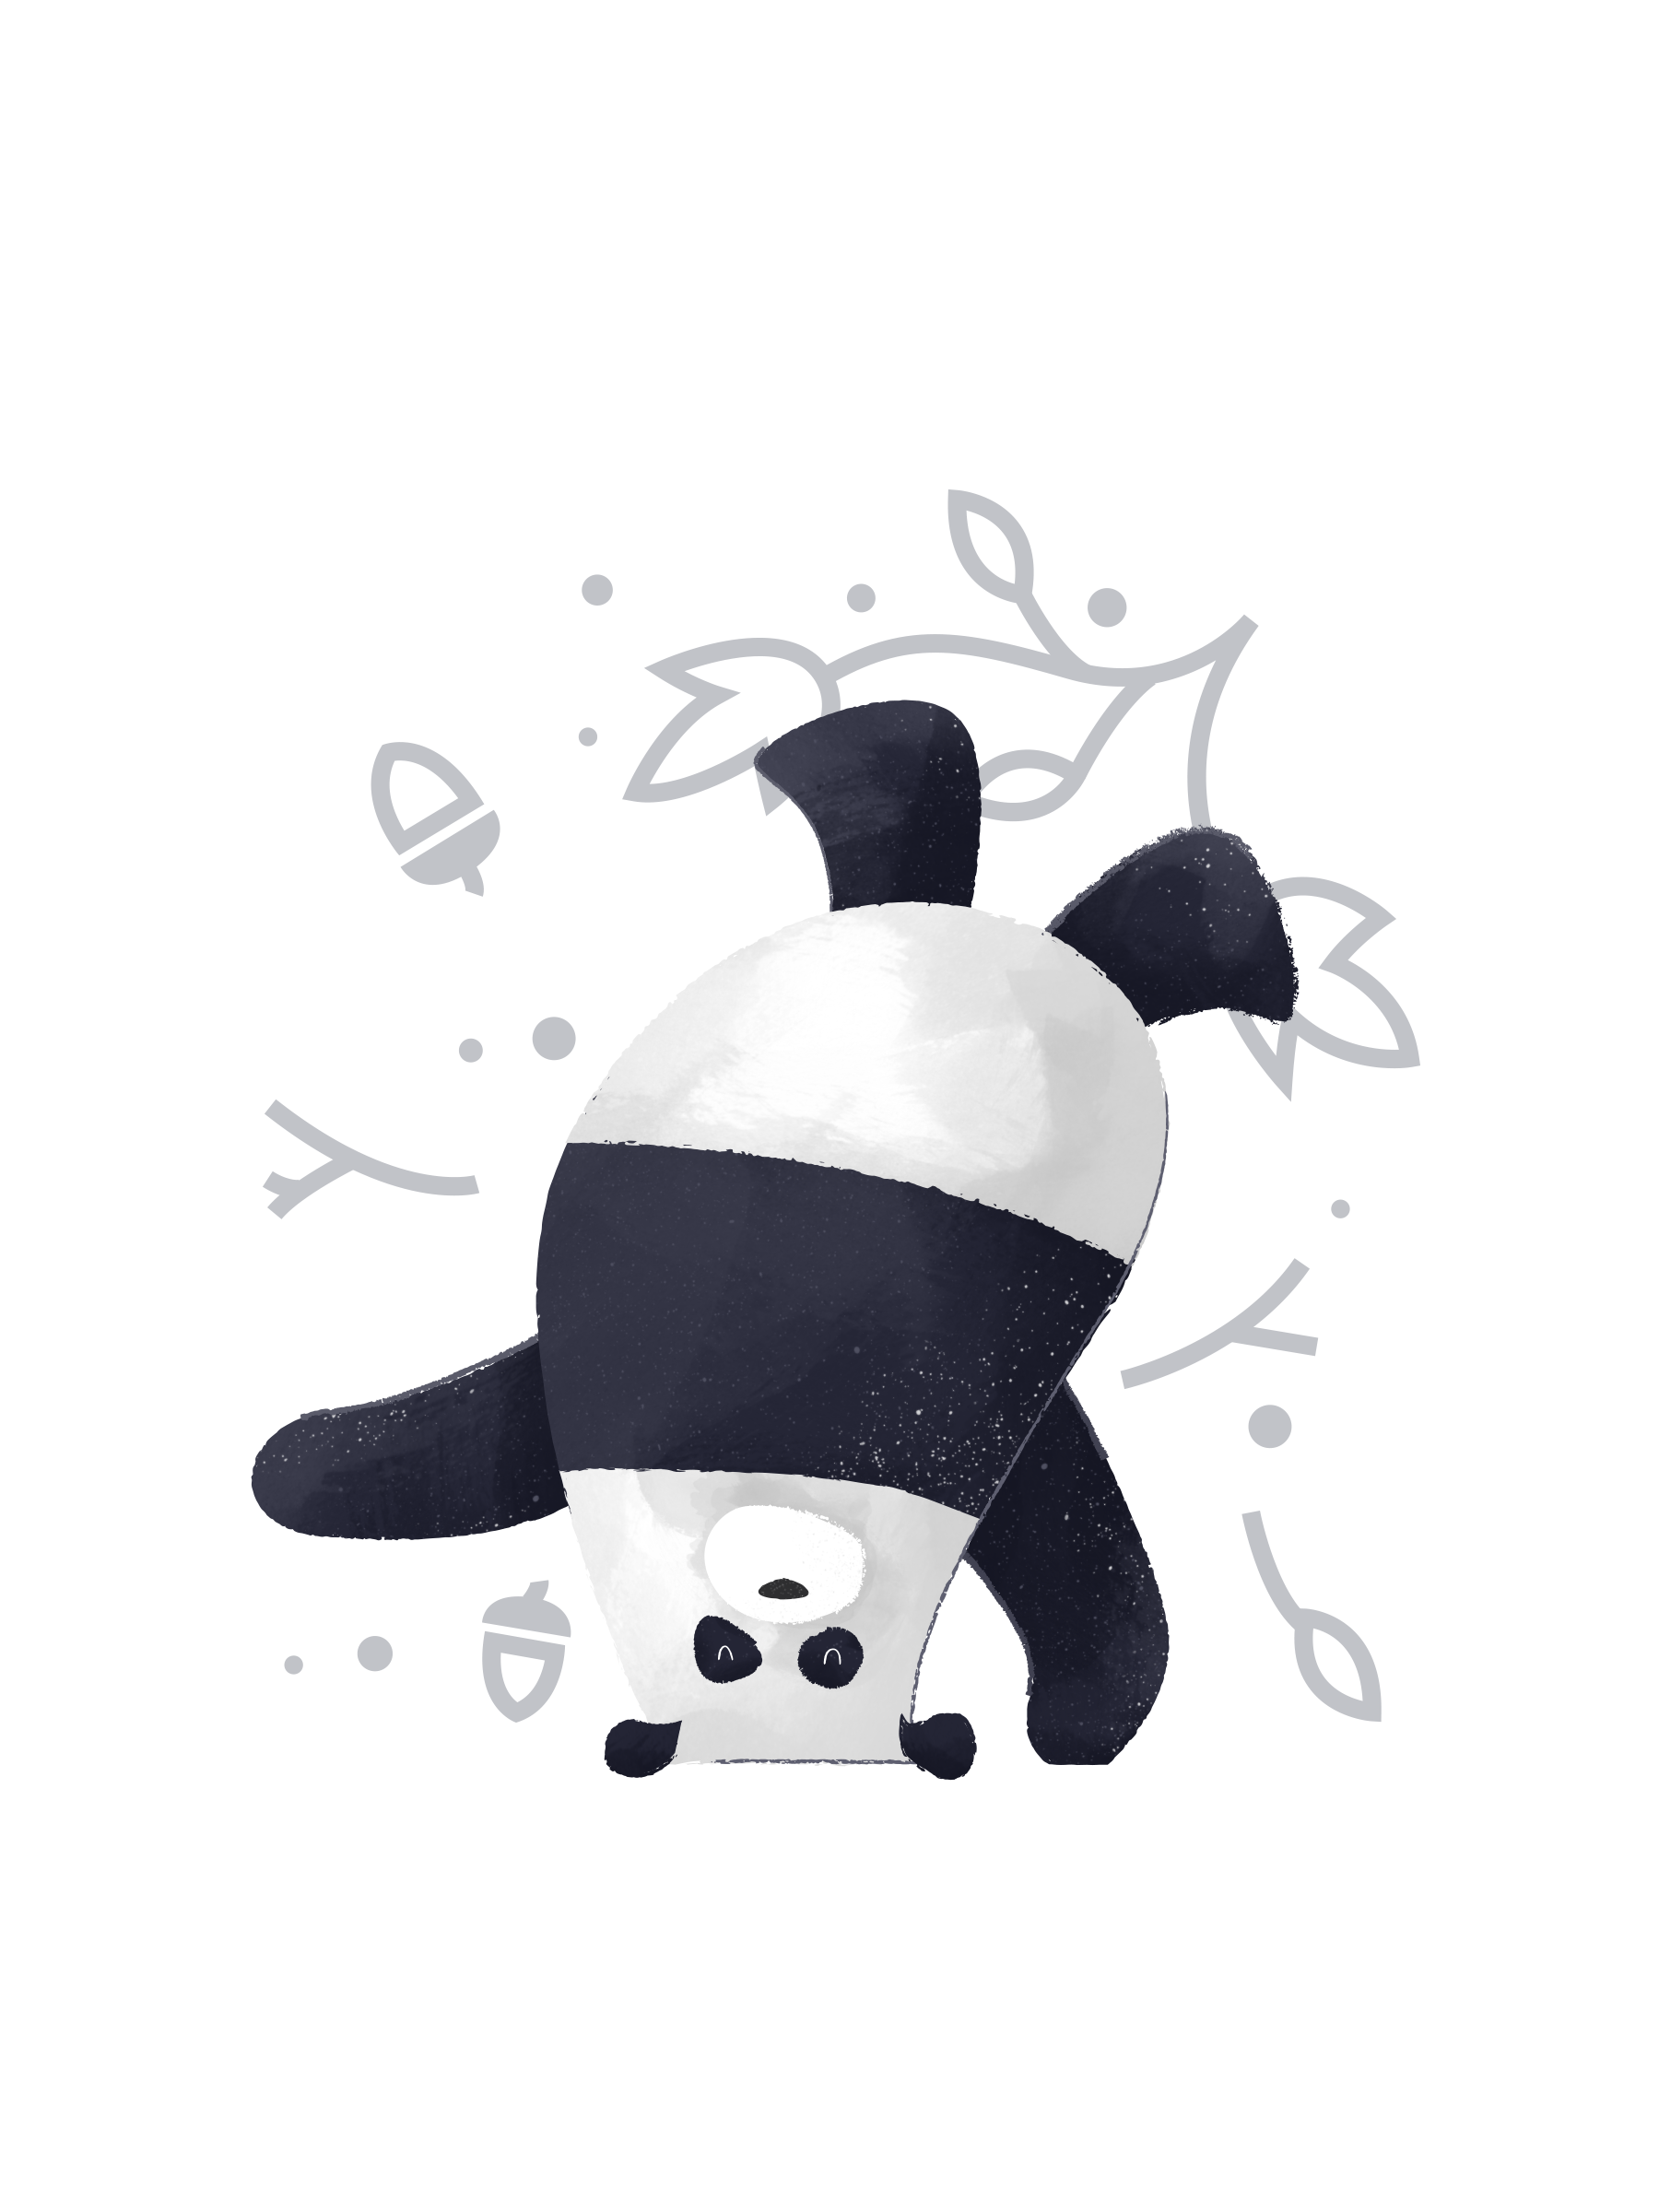 Lop + Lore: Panda Party